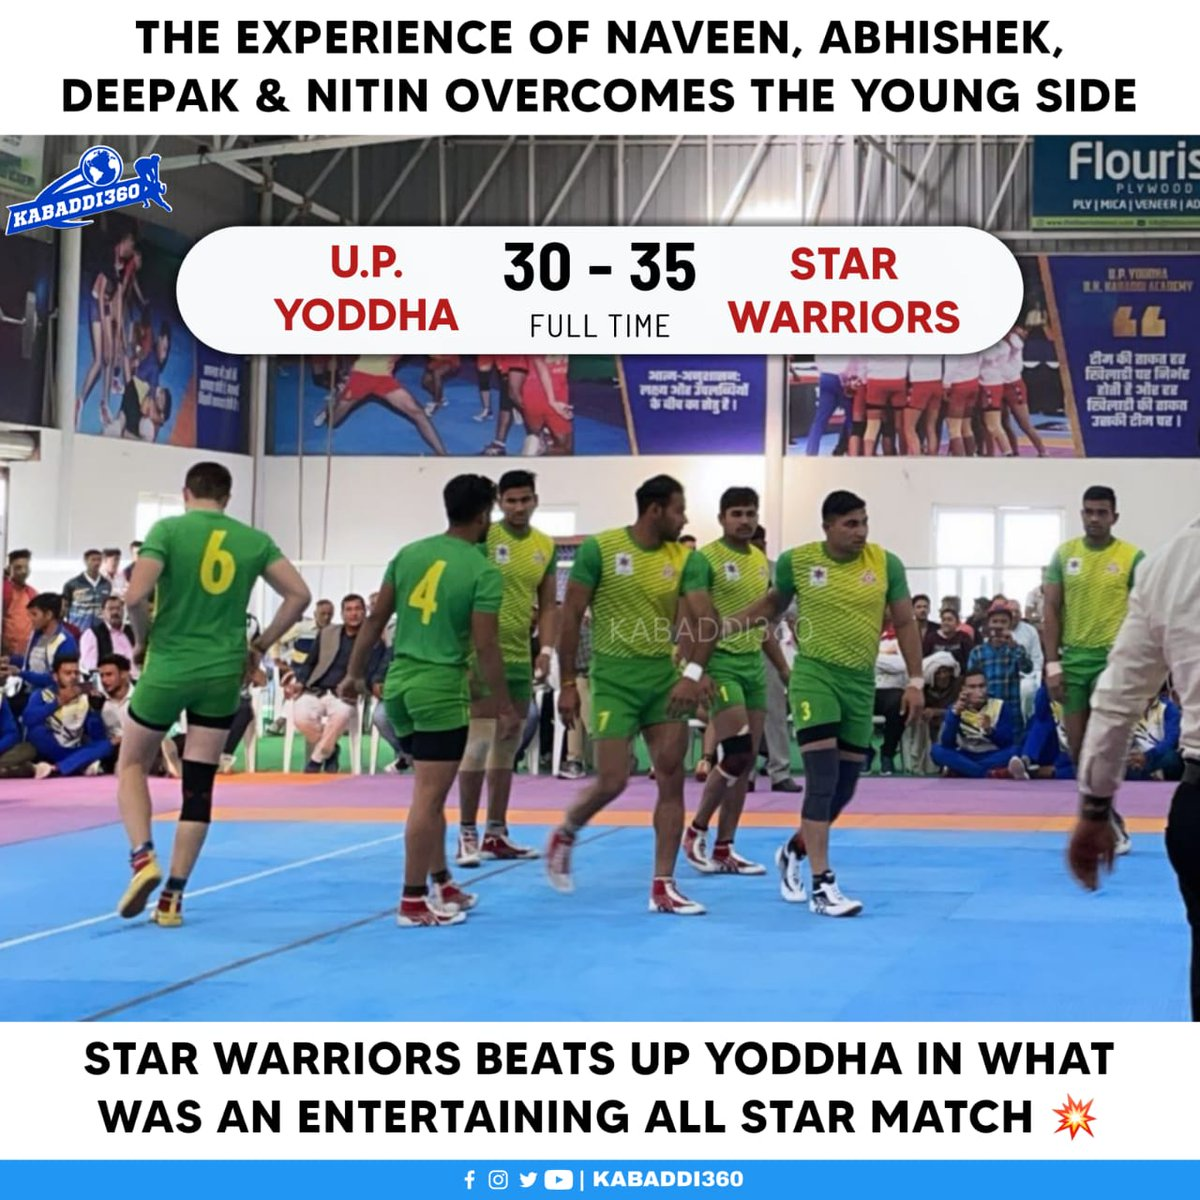 While UP Yoddha fought hard, Star Warriors proved their experience with a fantastic win in the All Star Match 🎉   #AllStarMatch #UPYoddha #StarWarriors #Kabaddi360